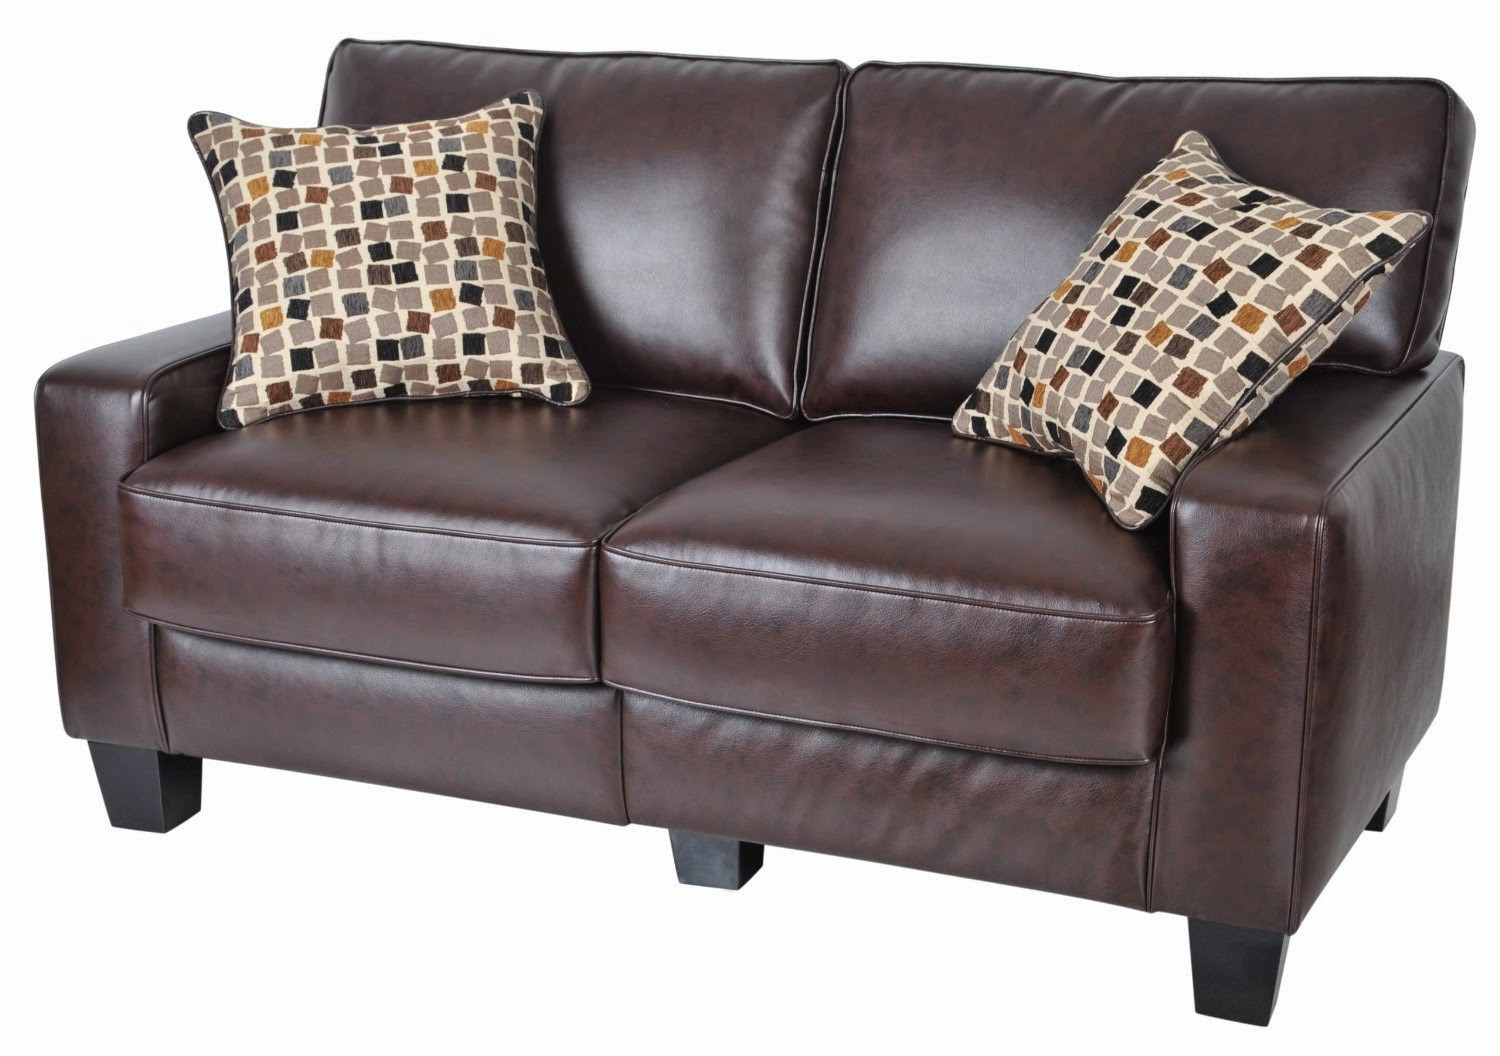 brown leather couch. Black Bedroom Furniture Sets. Home Design Ideas